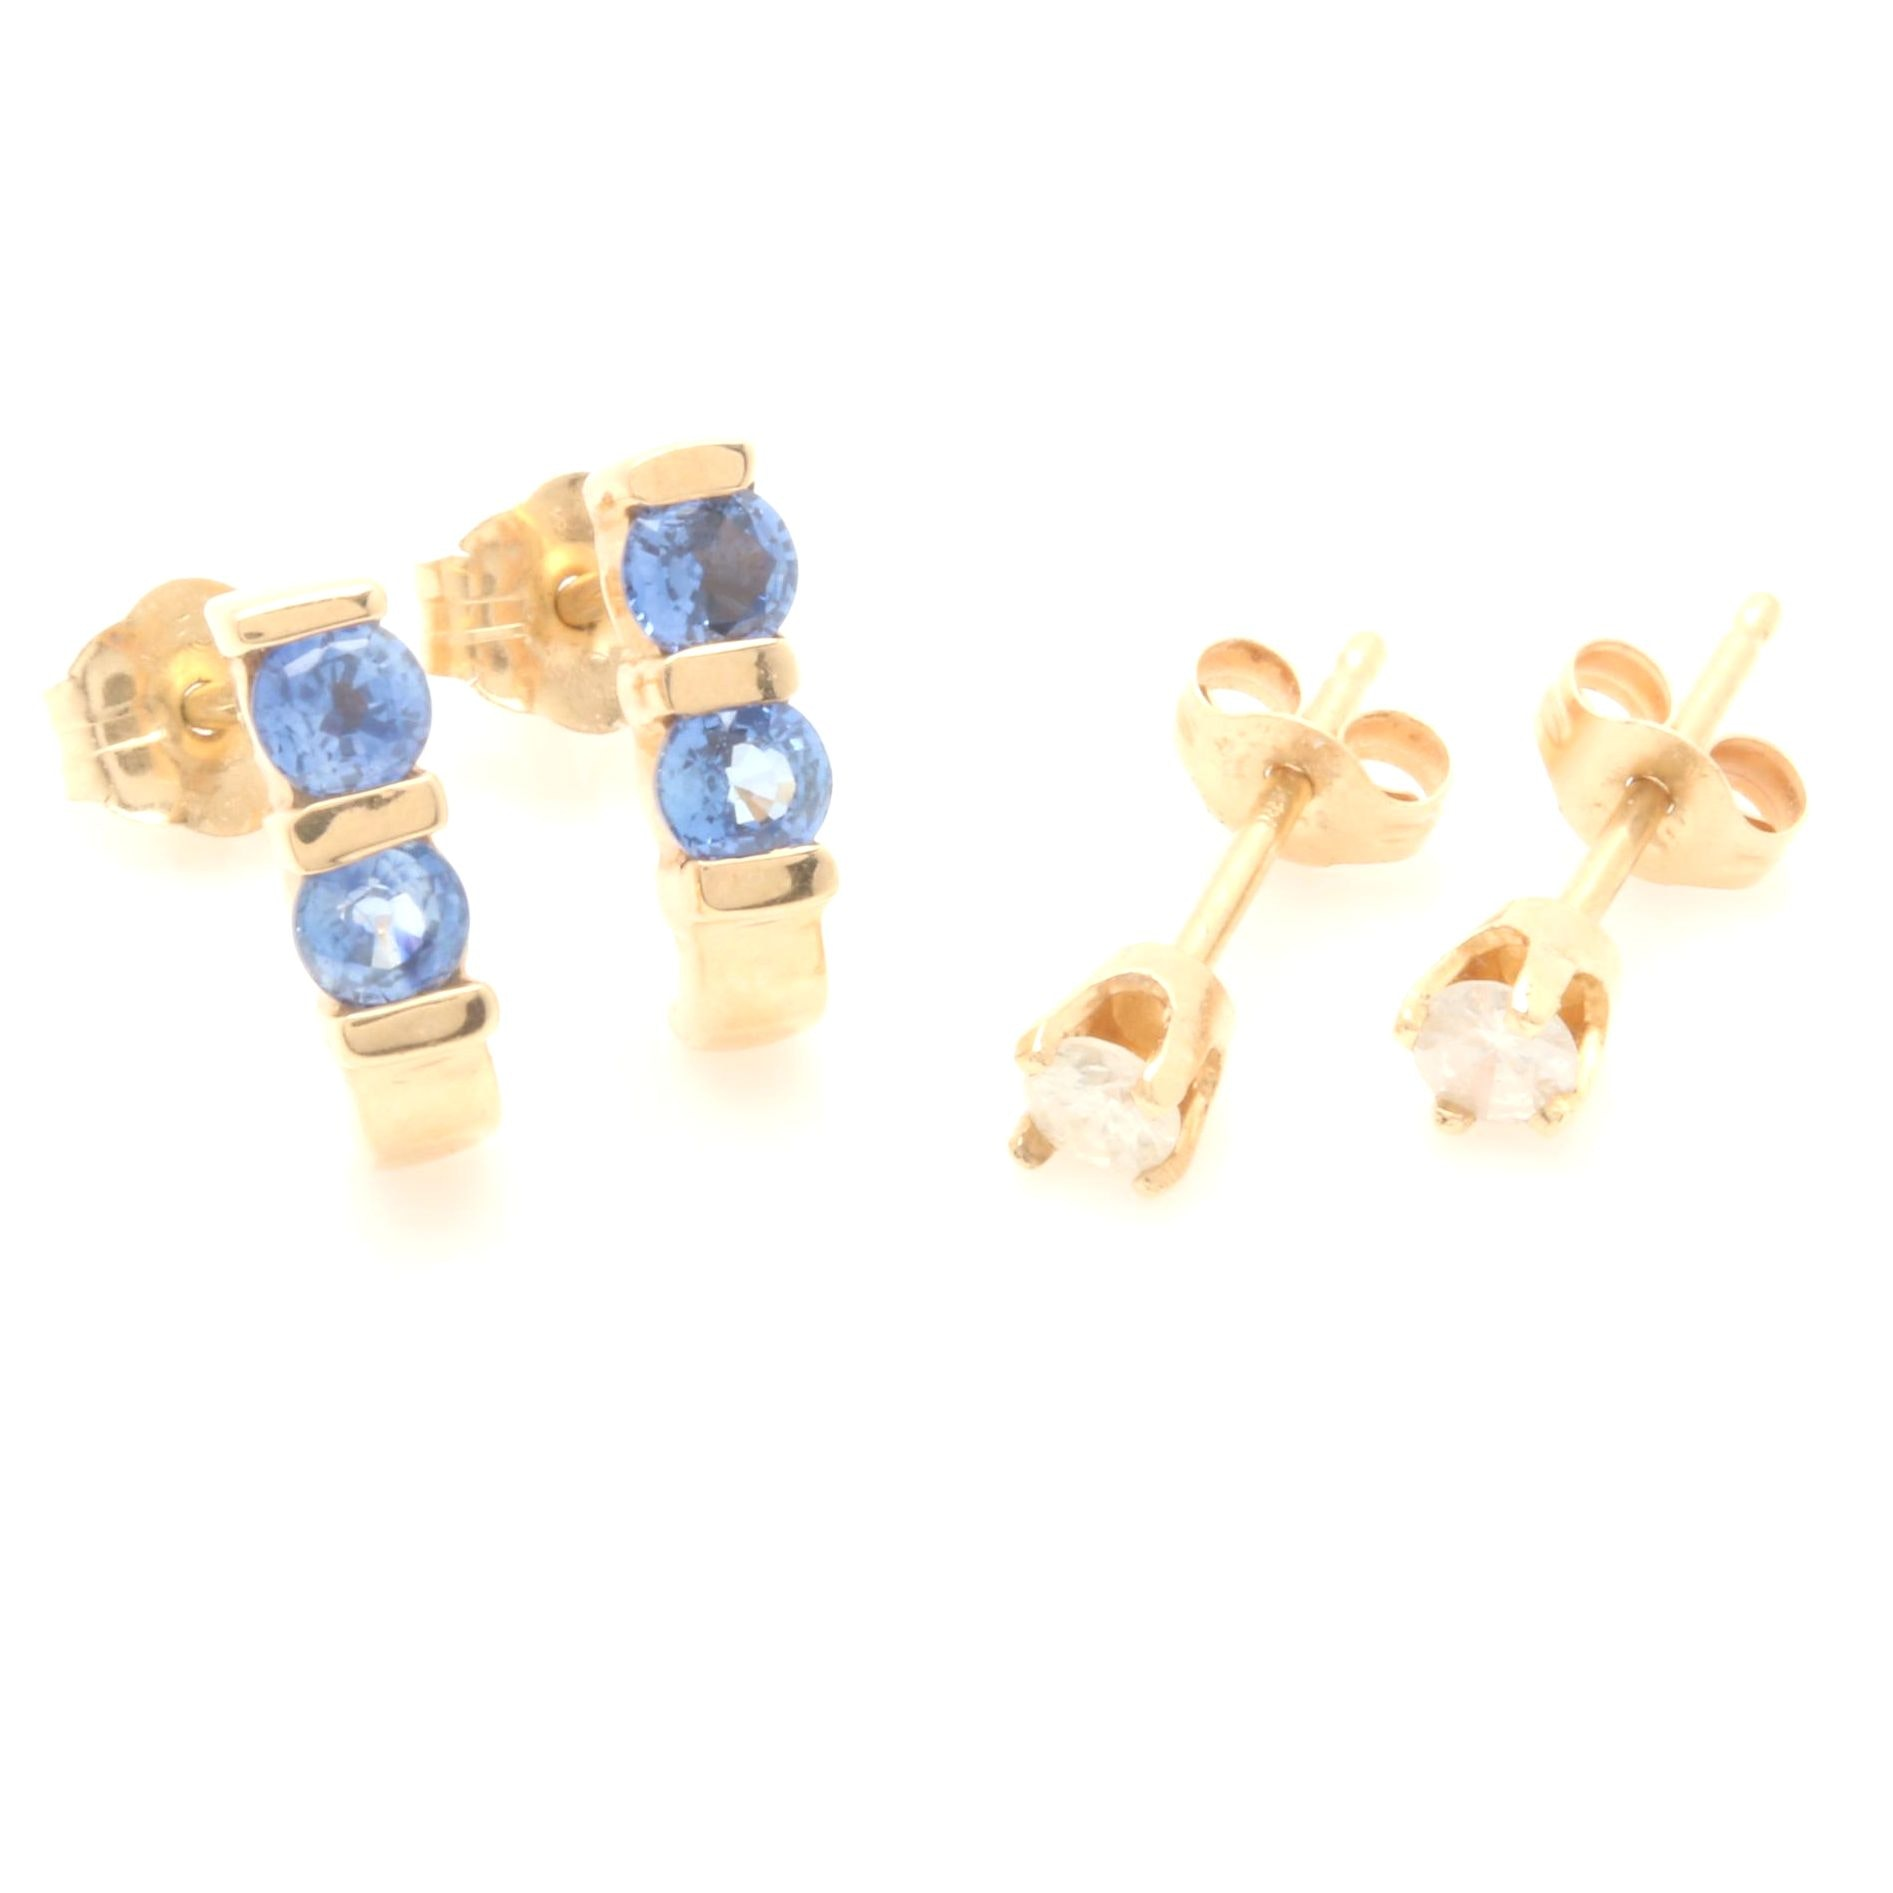 14K Yellow Gold Earrings Including Blue Sapphires and Diamonds